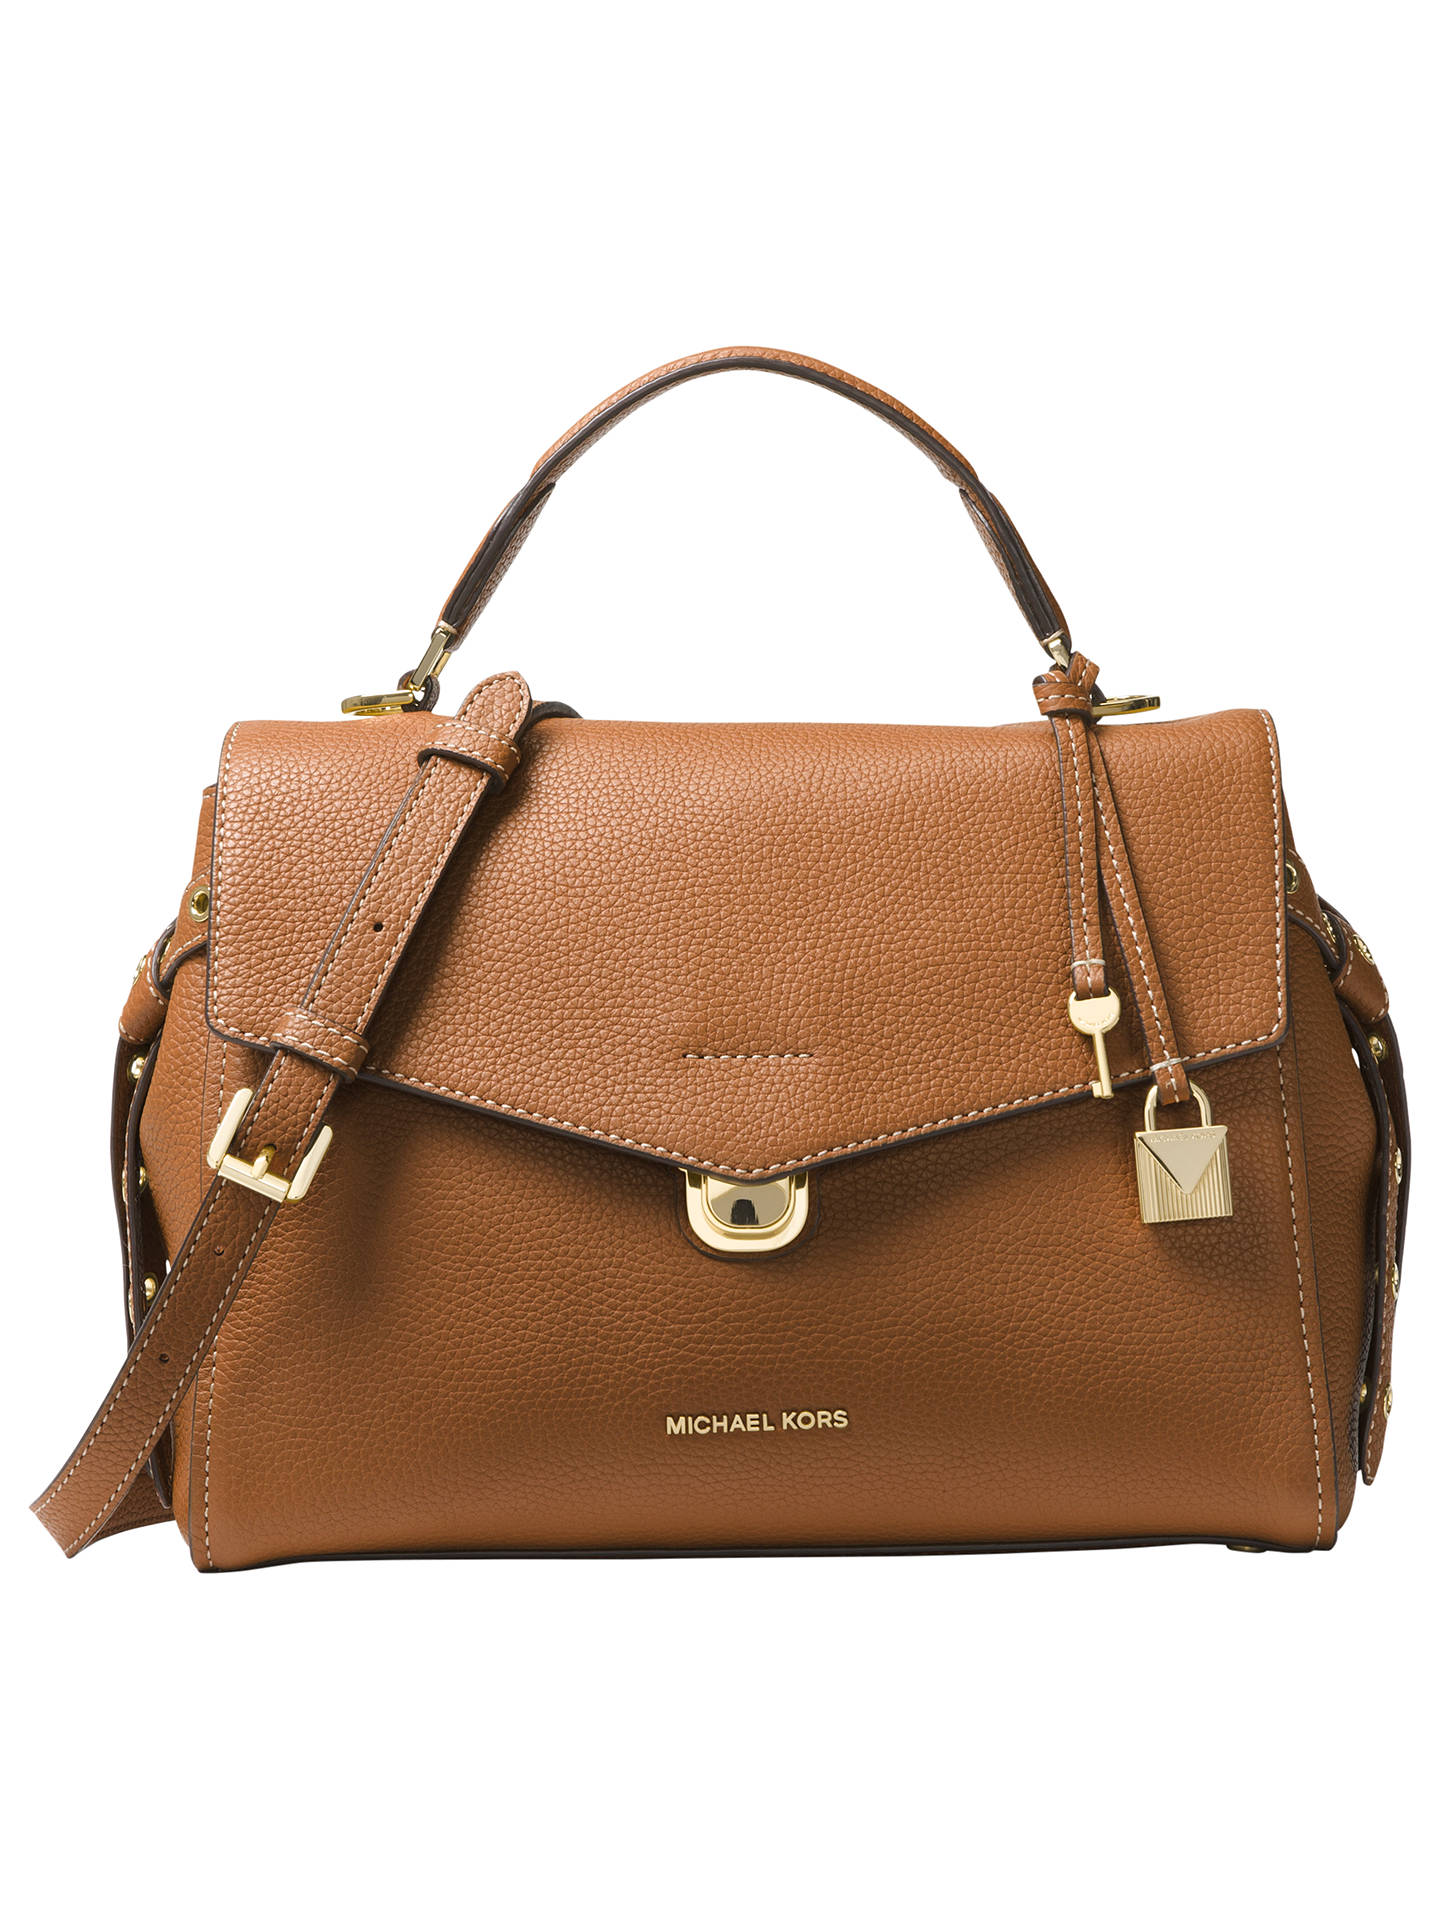 64977fbbcc50fe ... Buy MICHAEL Michael Kors Bristol Medium Leather Satchel Bag, Acorn  Online at johnlewis.com ...